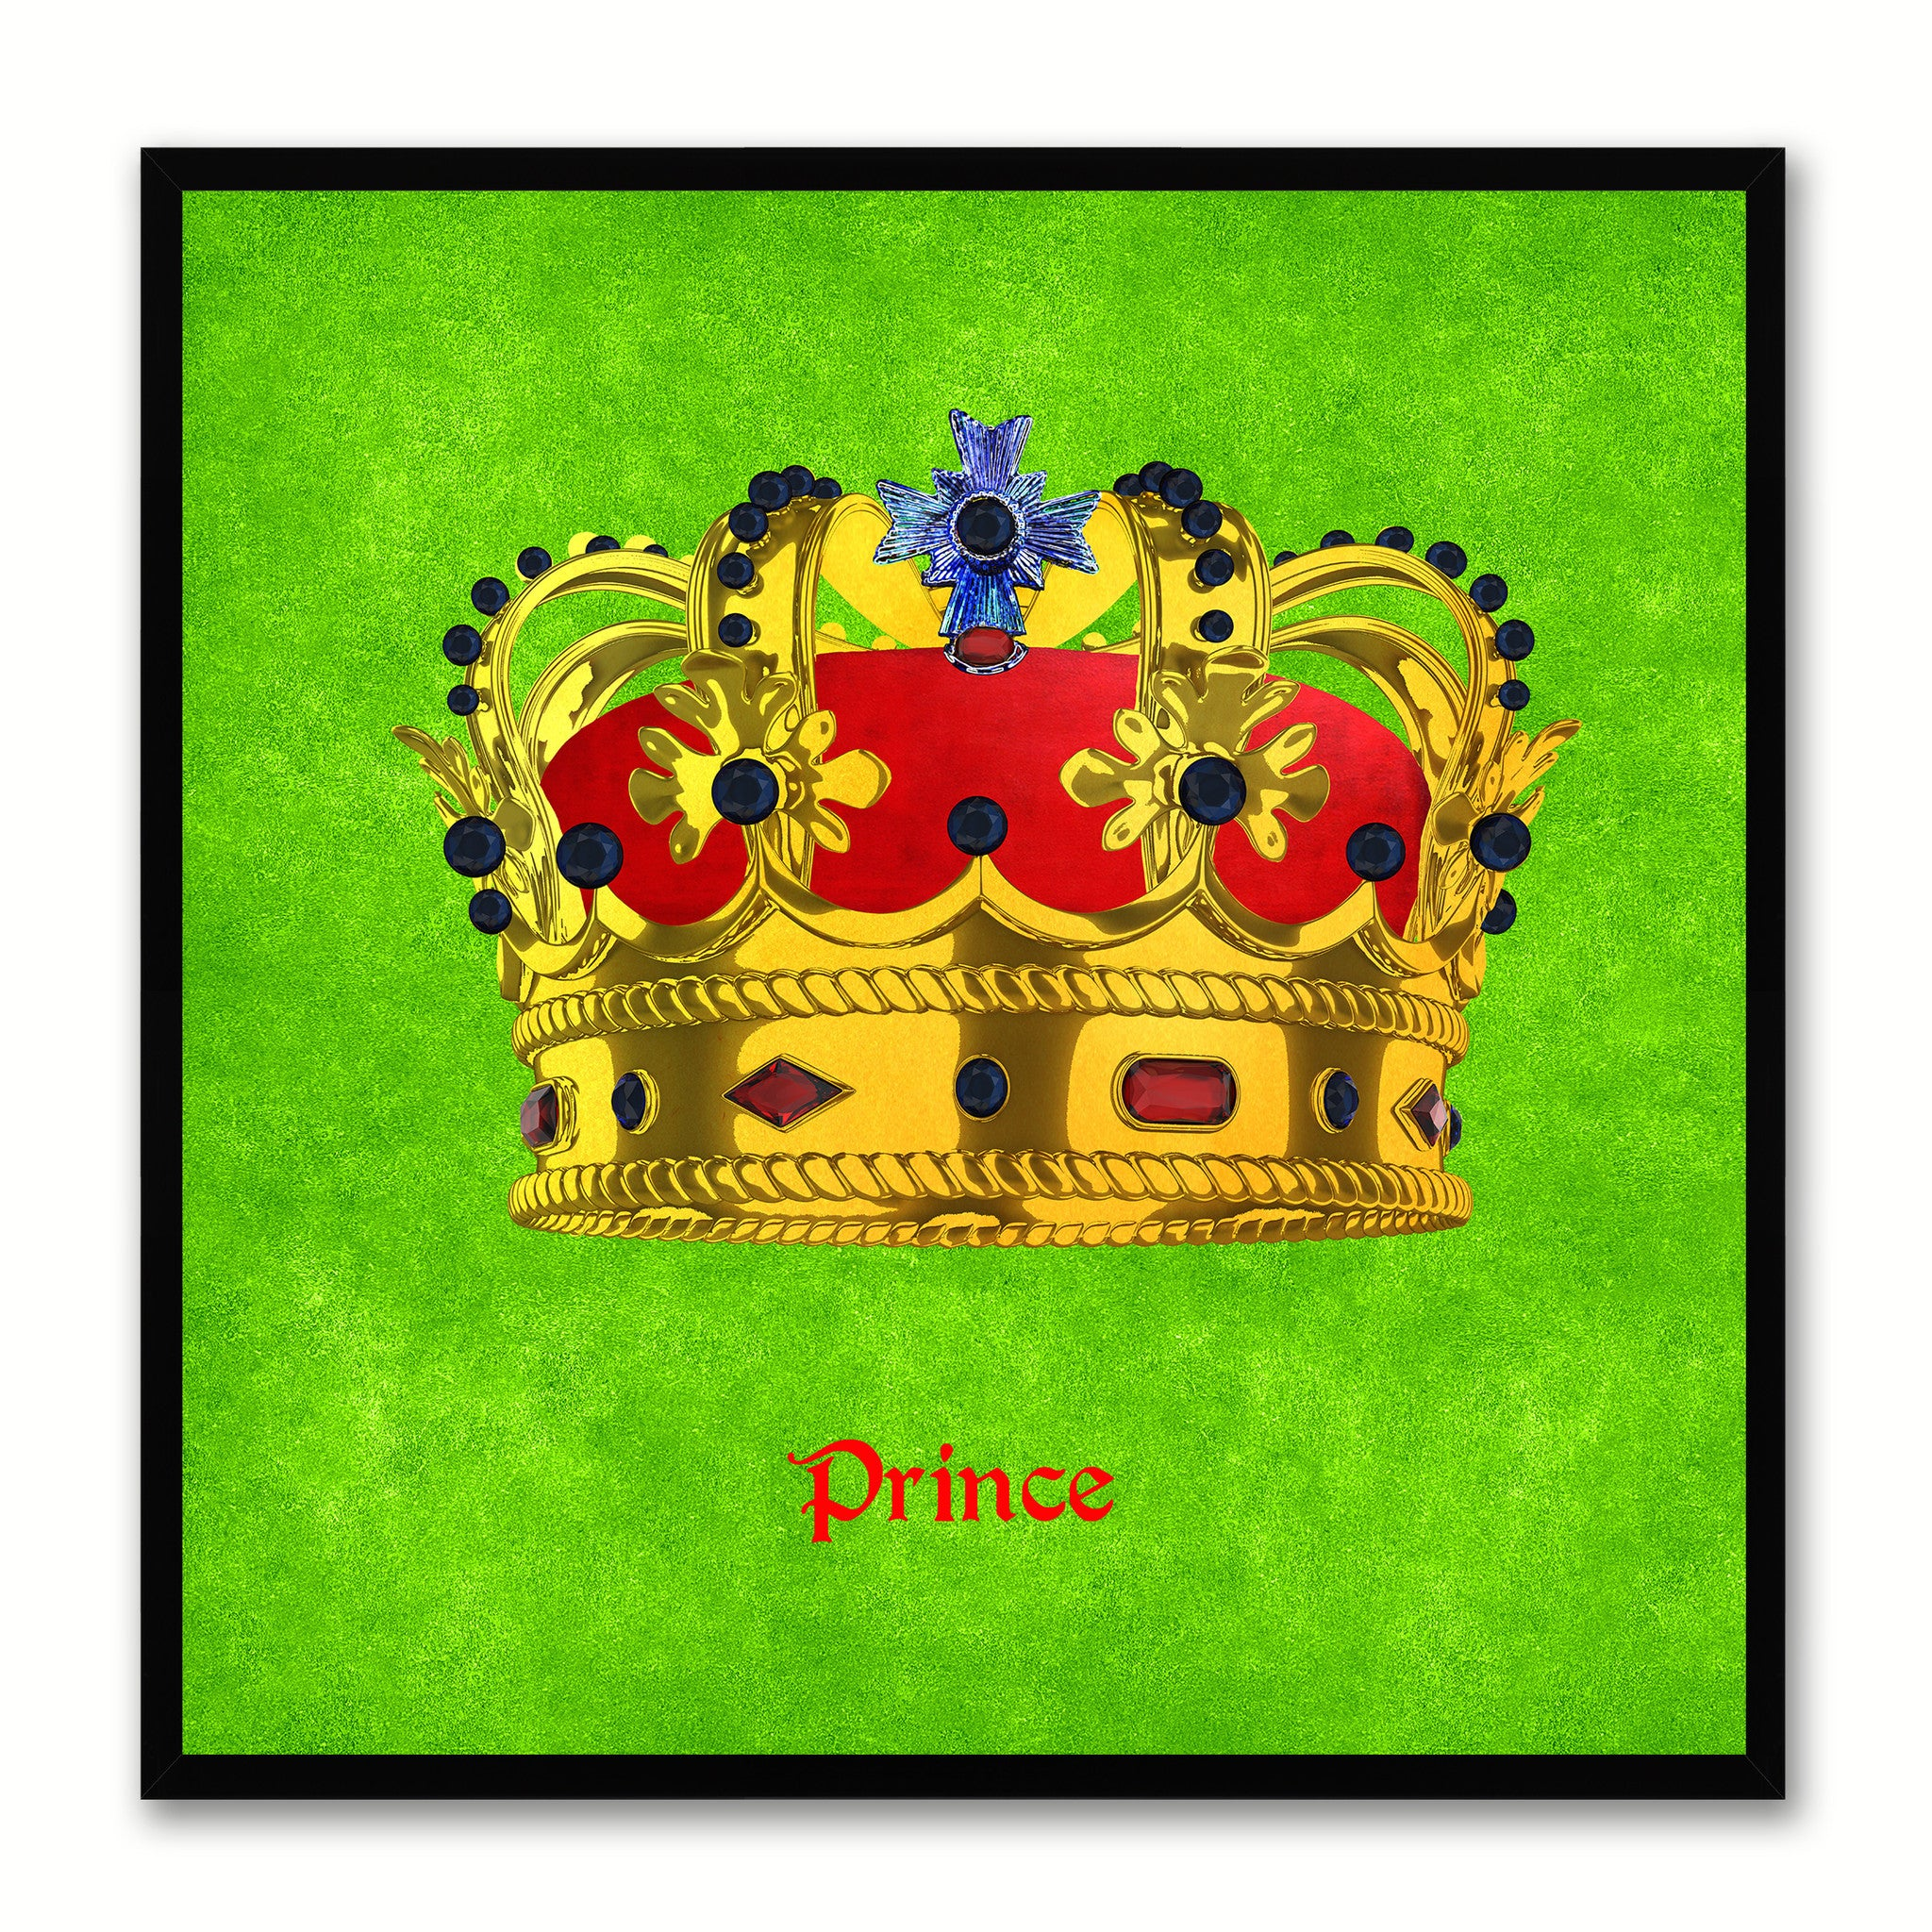 Prince Green Canvas Print Black Frame Kids Bedroom Wall Home Décor